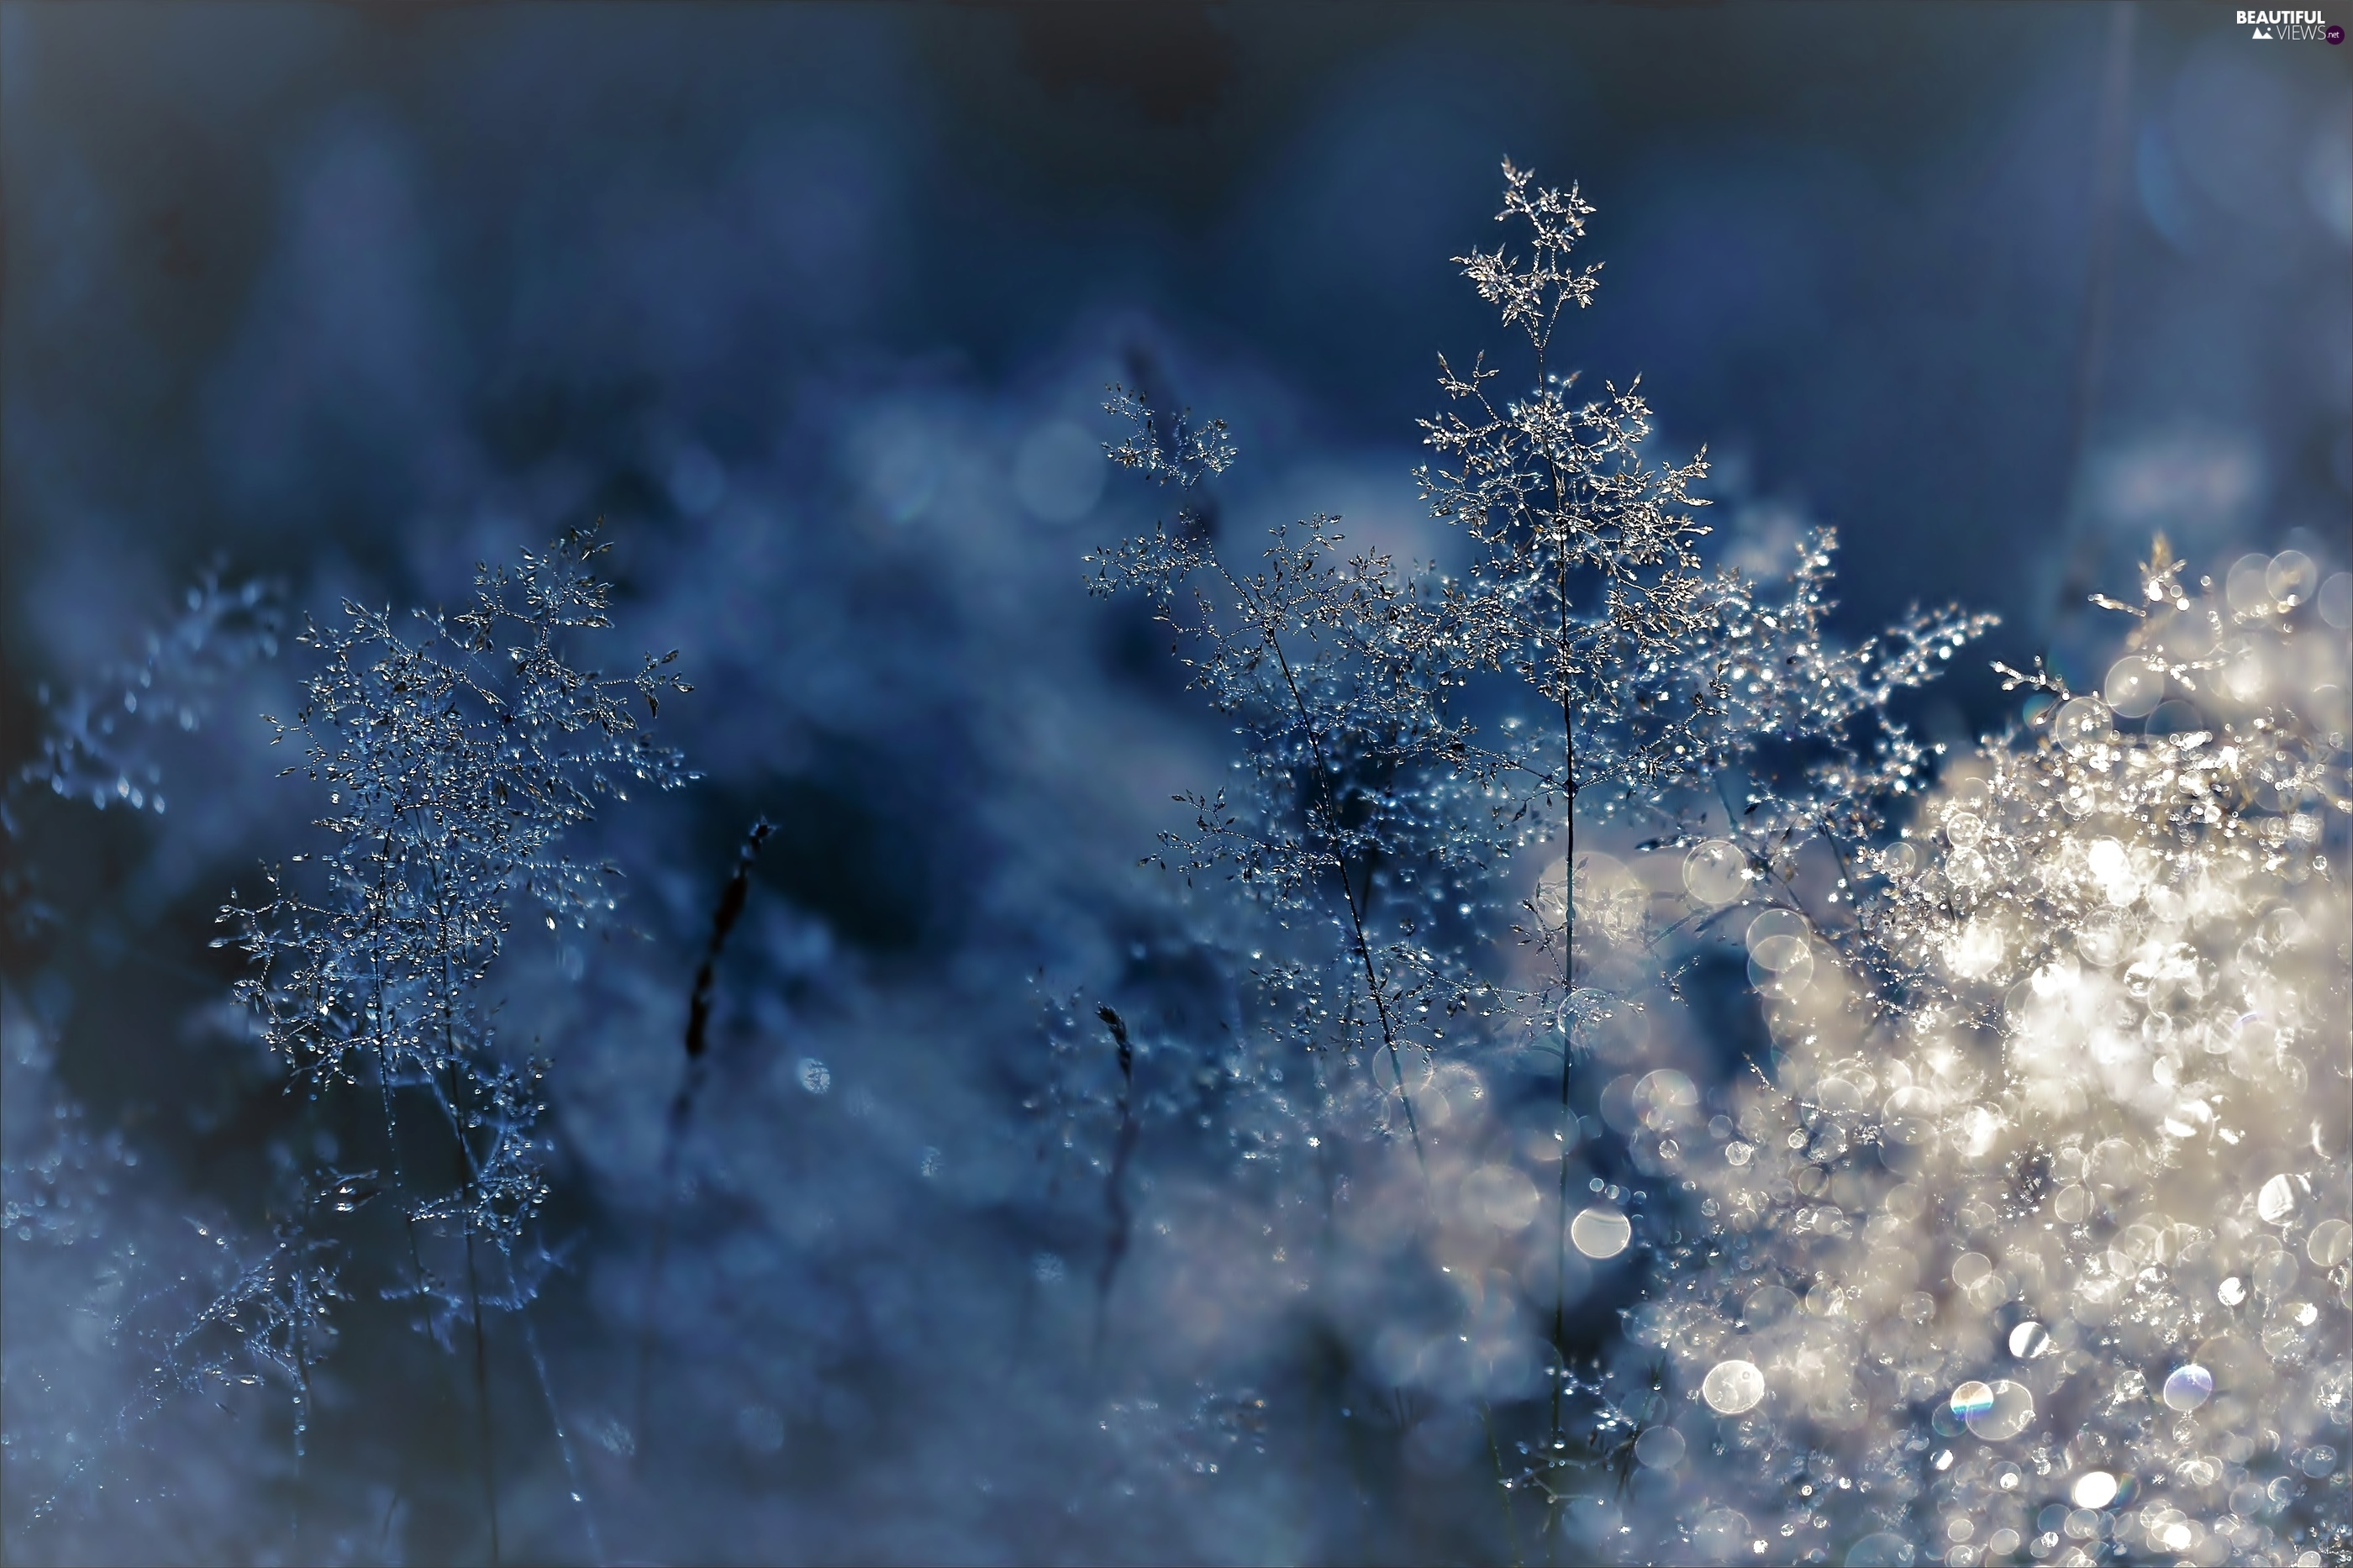 grass, ligh, Bokeh, sun, luminosity, frozen, winter, flash